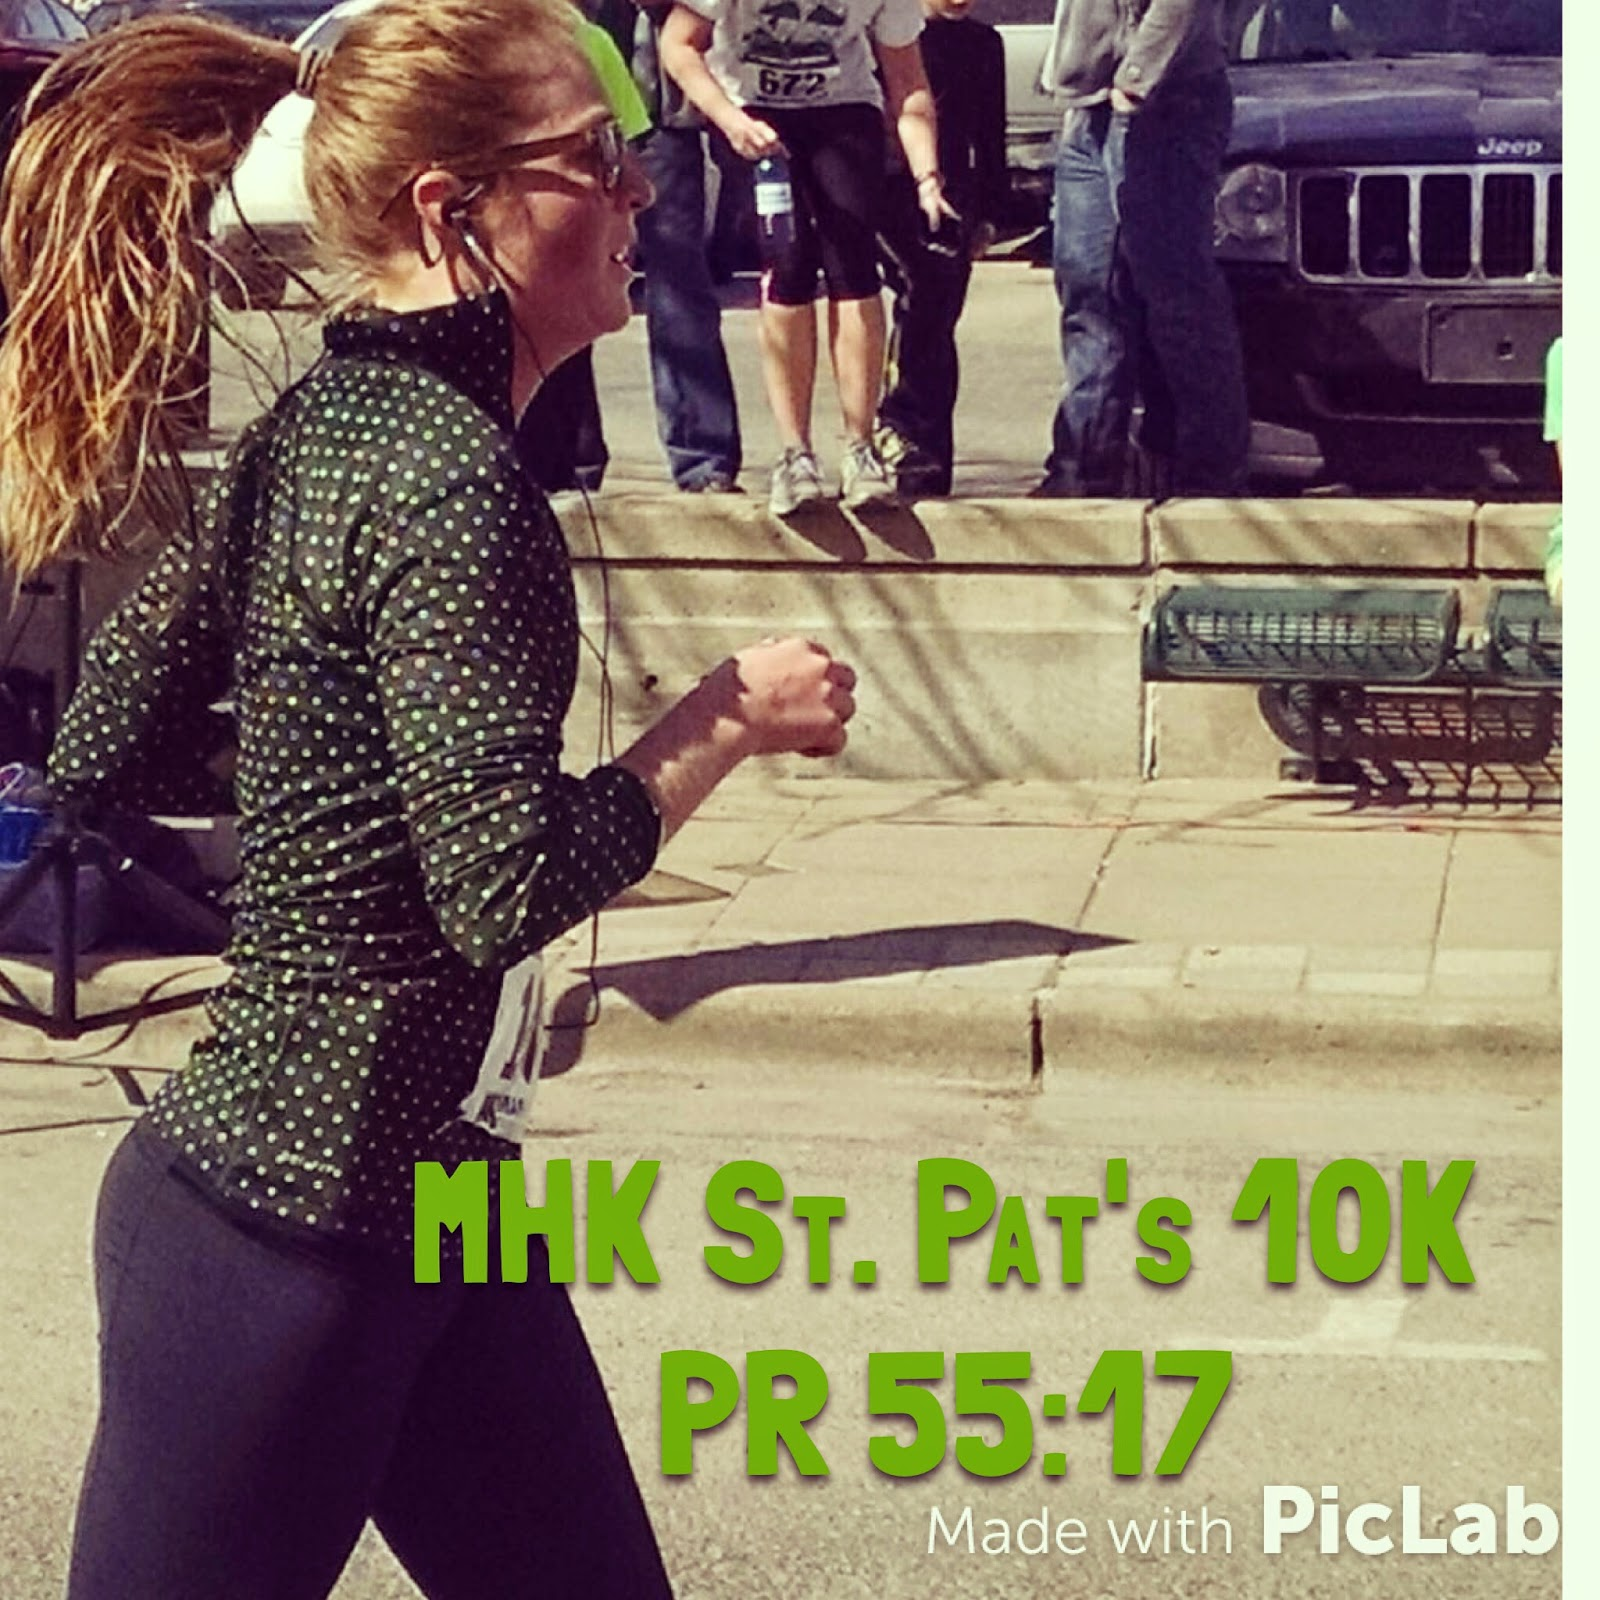 10K PR in Manhattan